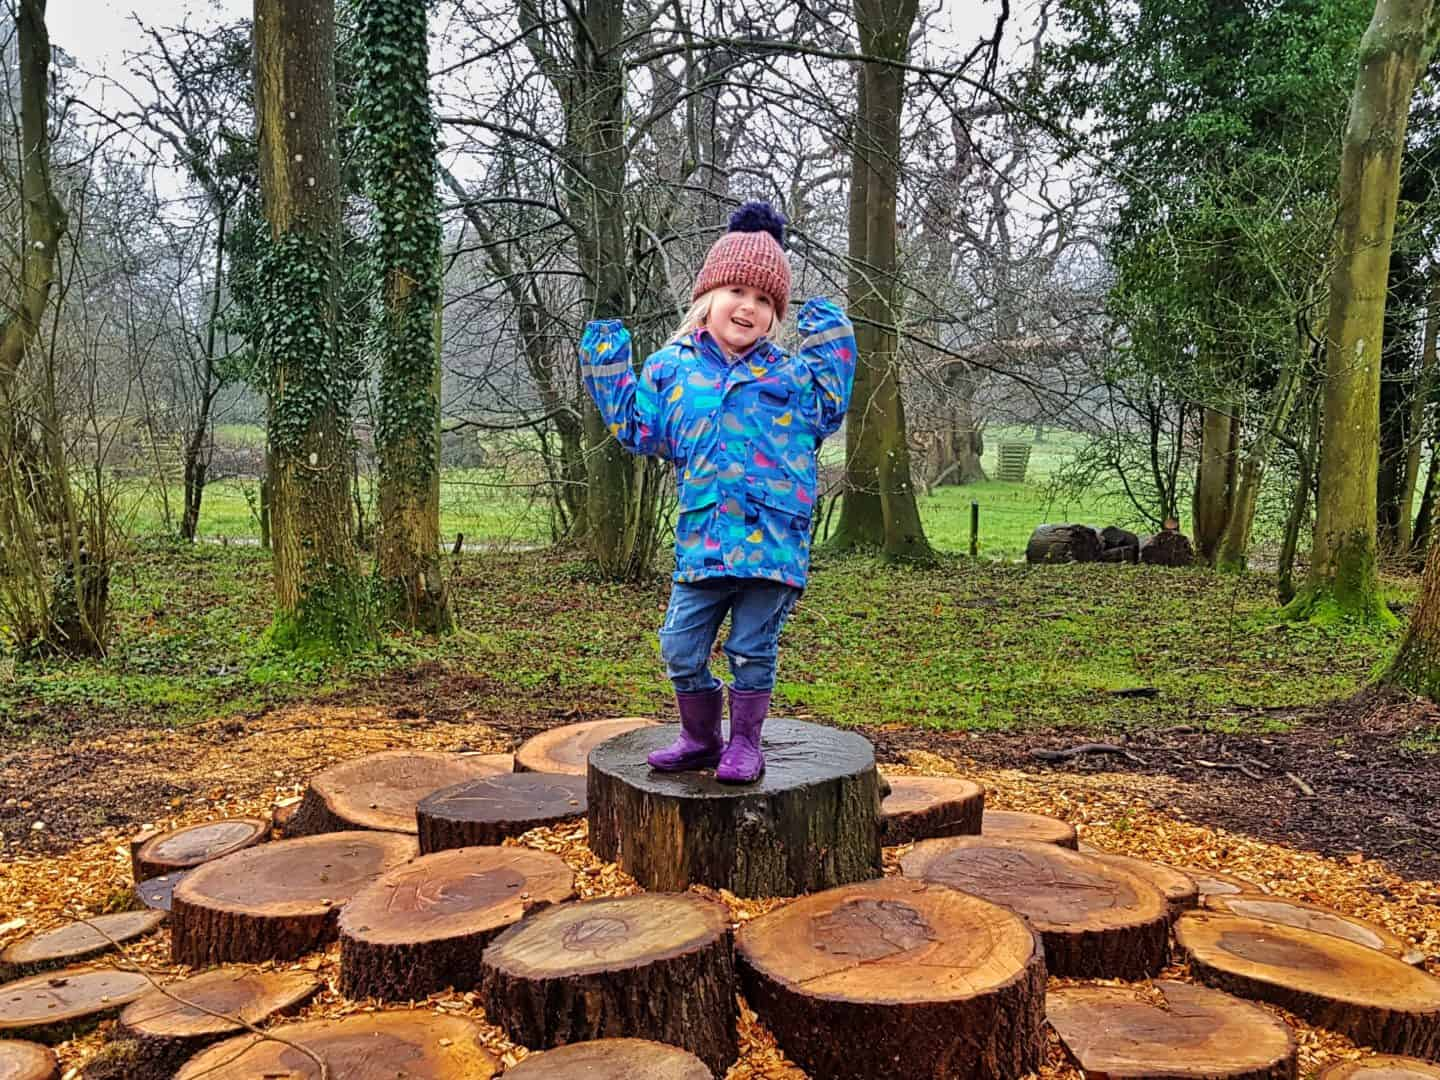 national trust membership little girl in blue coat on logs